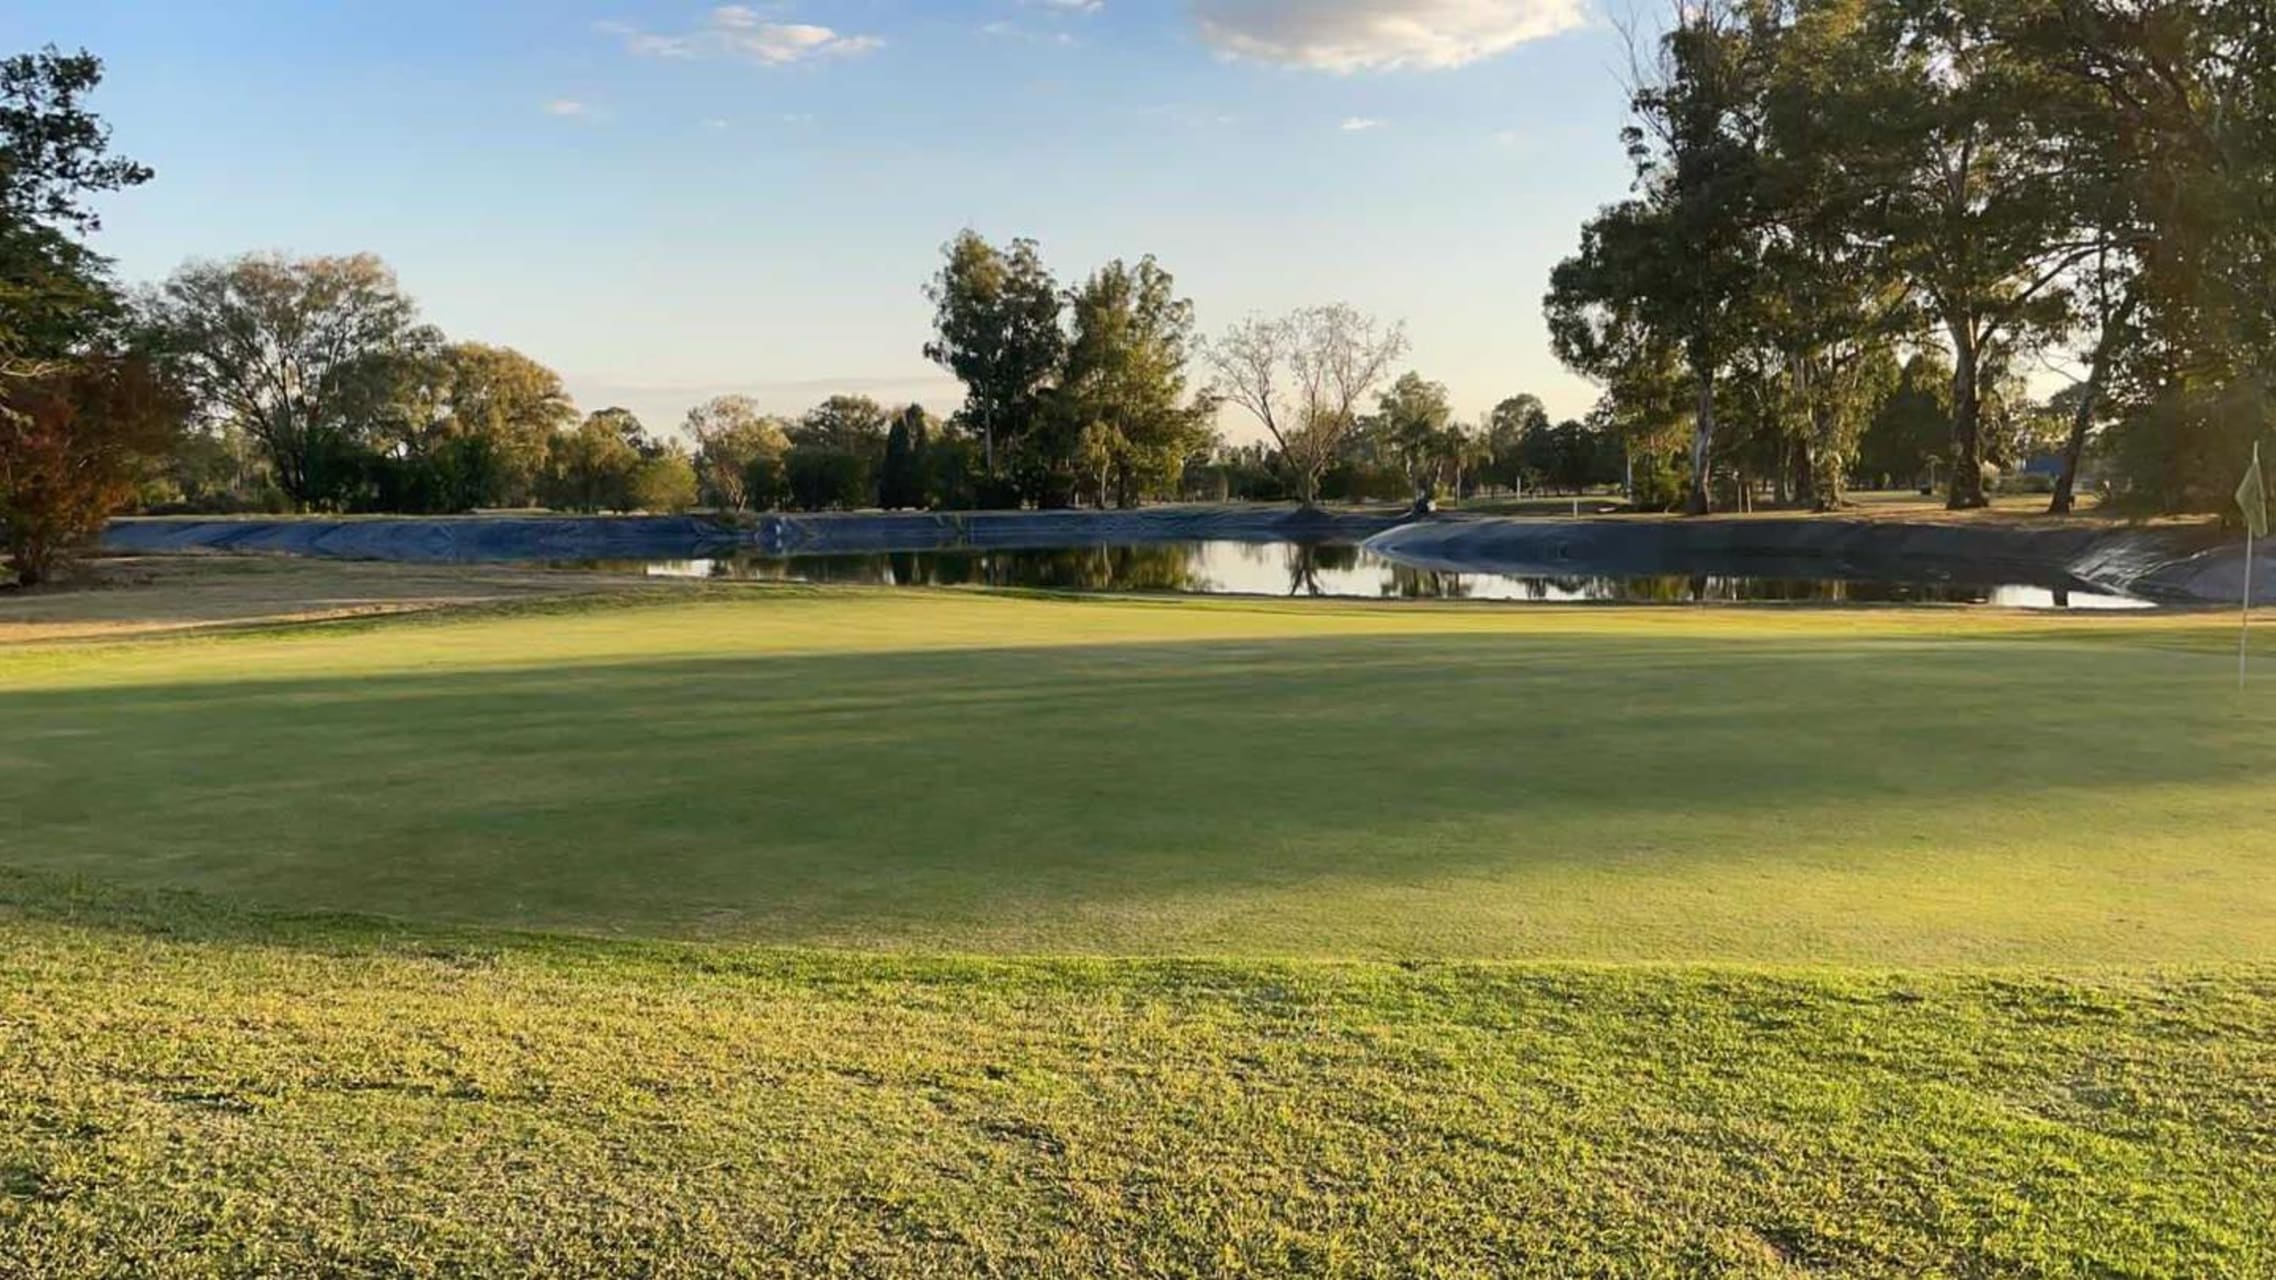 Harare - Experience African Elegance at a Country Club!